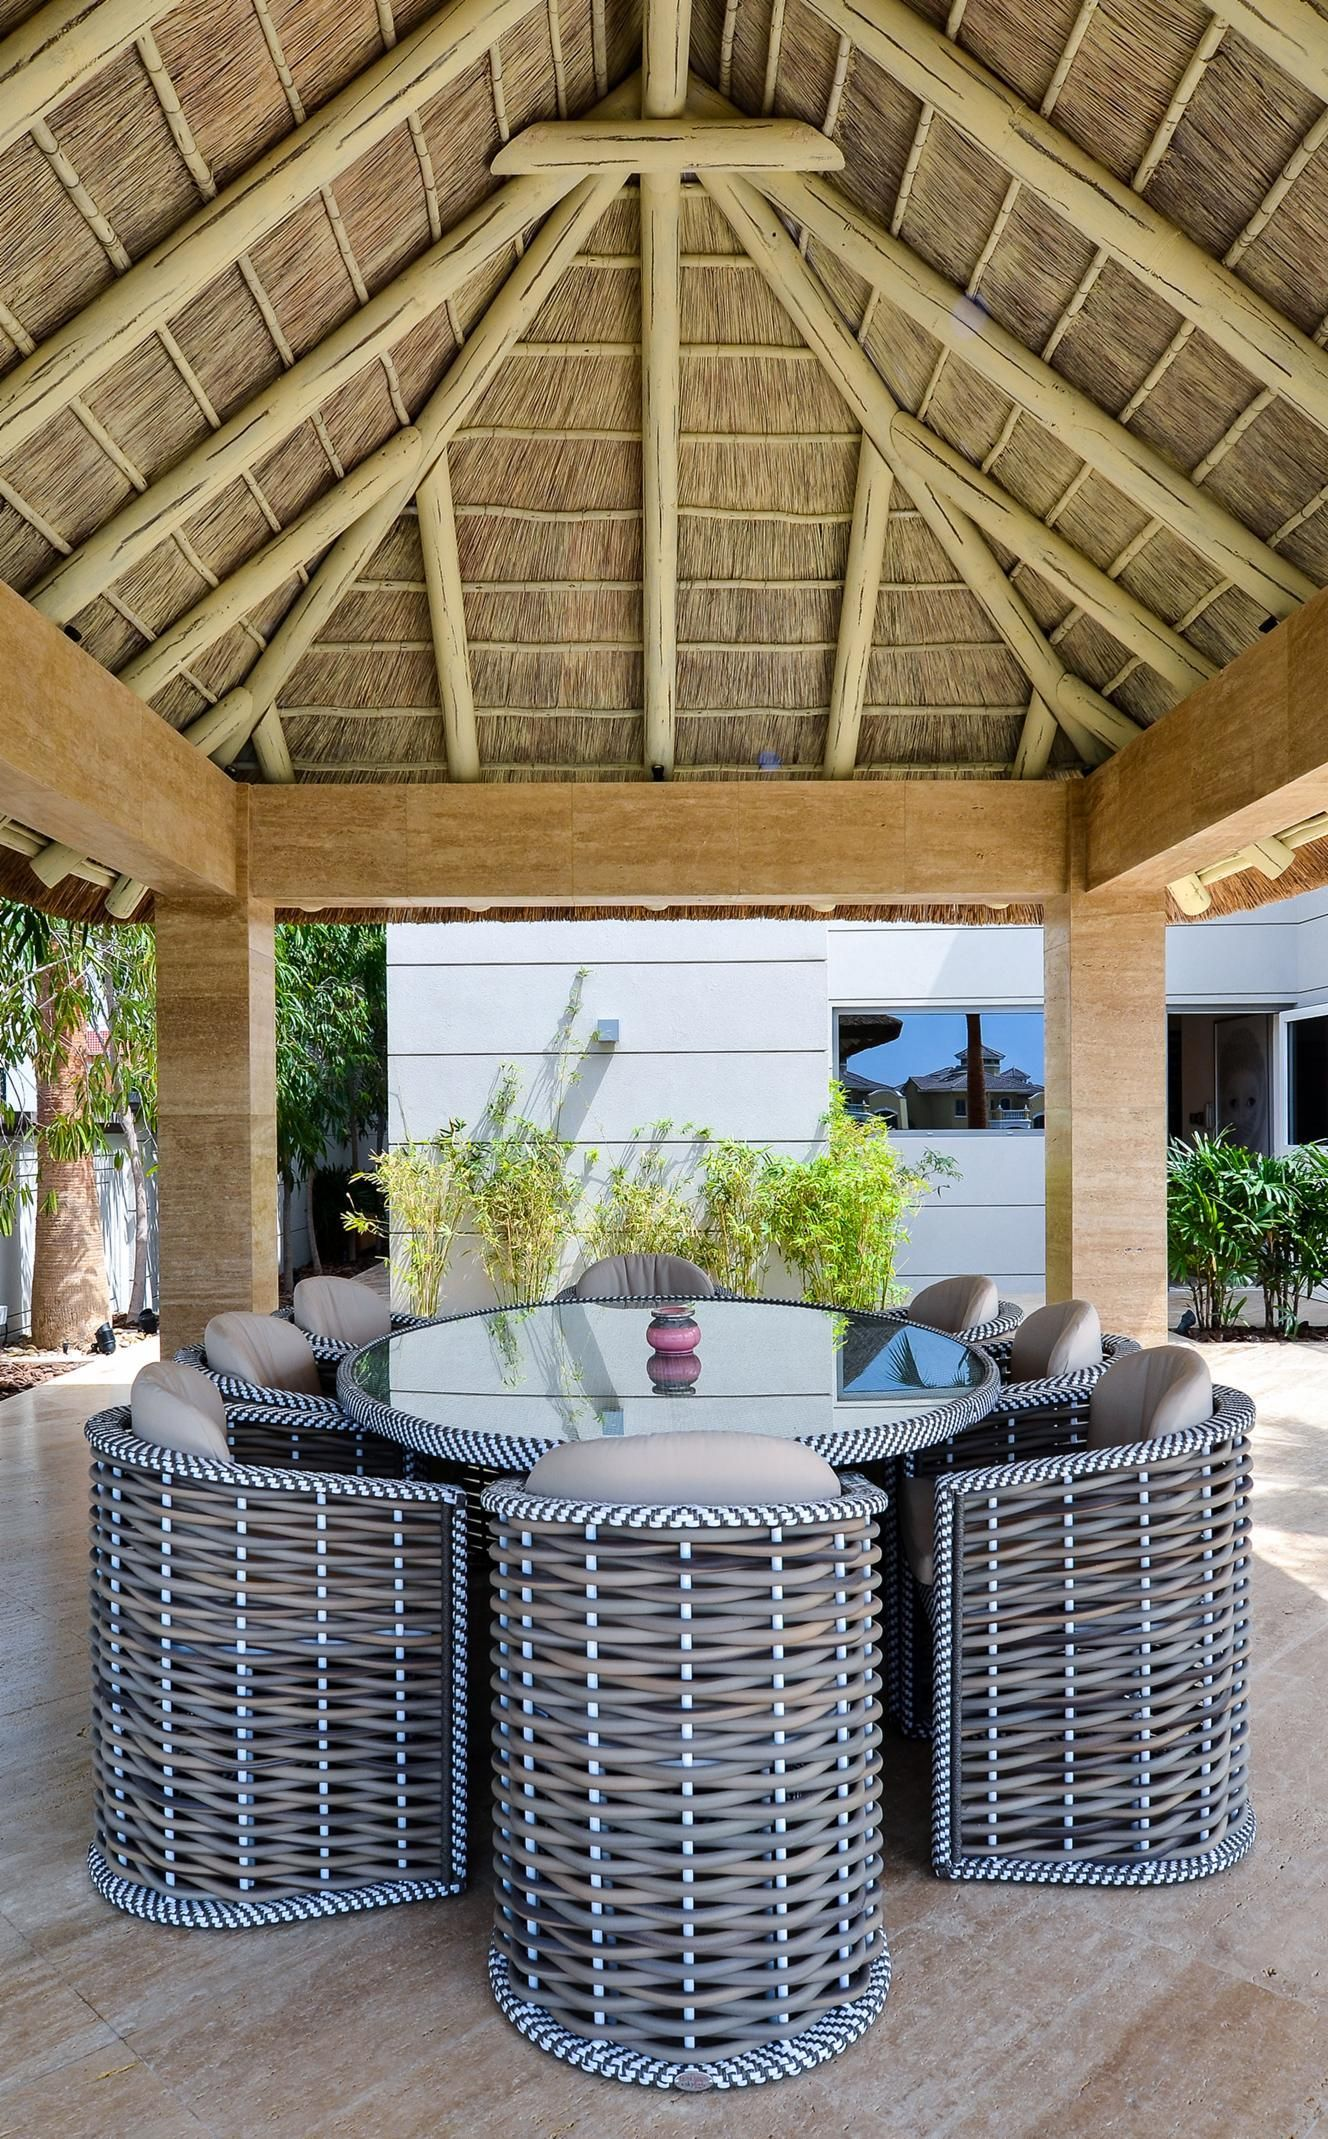 Outdoor Thatched Gazebo With Concrete Pillars And Natural Finish Perfect For Outdoor Dining And Family Time Gazebo Plans Deck Designs Backyard Outside Gazebo